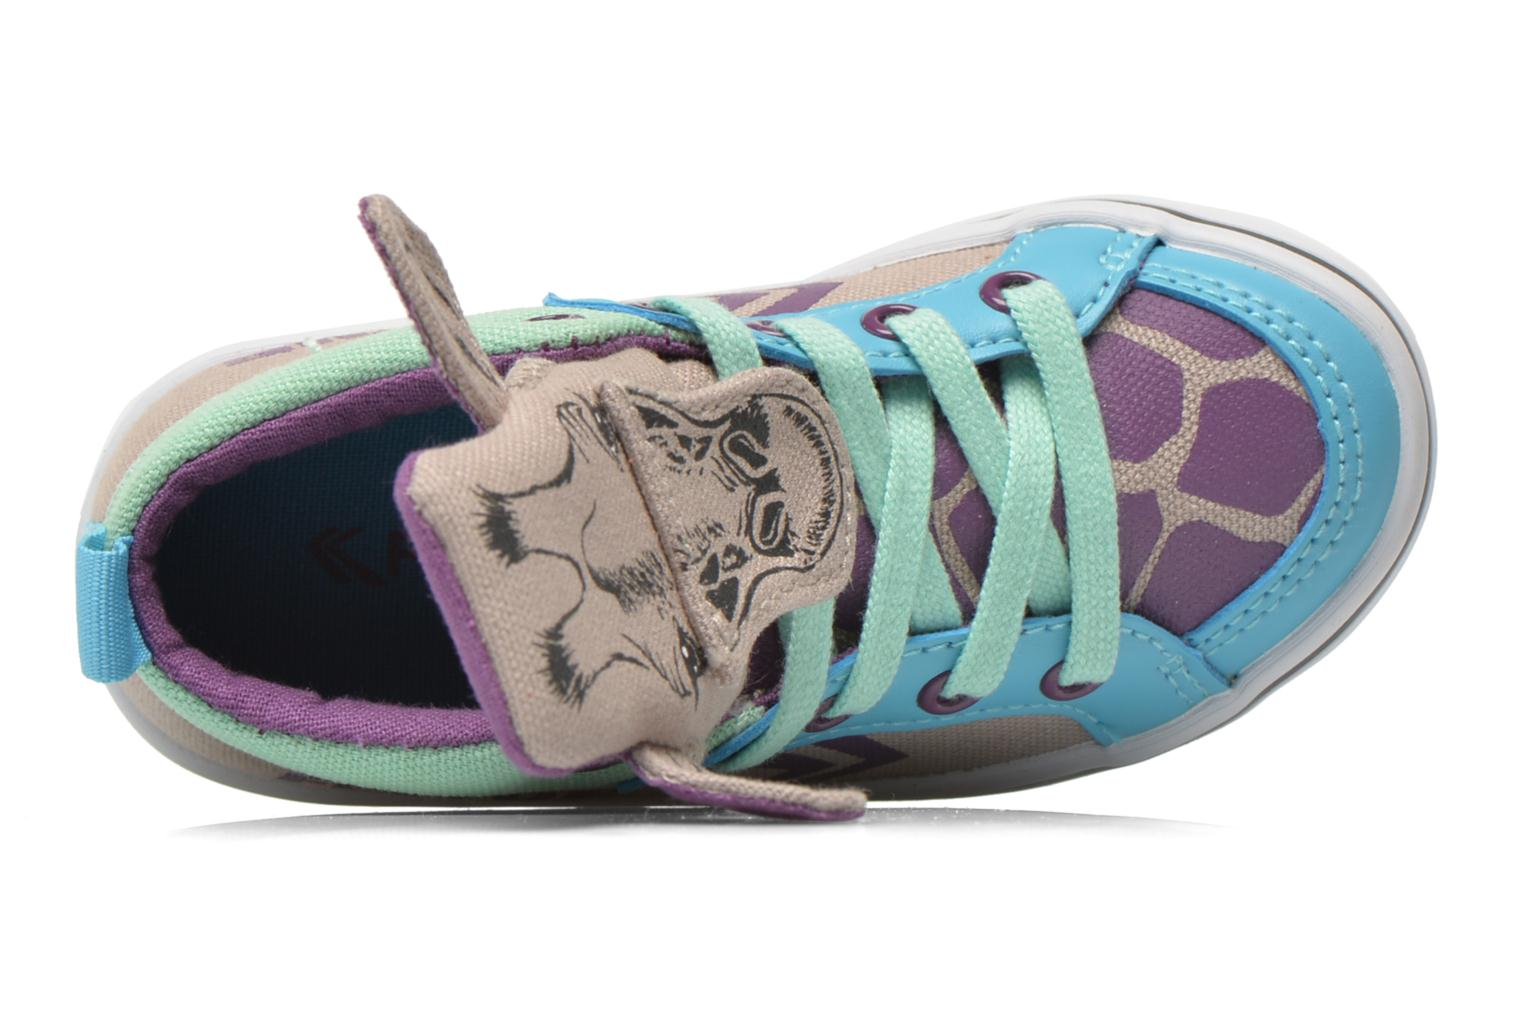 Delta Mid Animal Grey/Blue/Purple/Mint